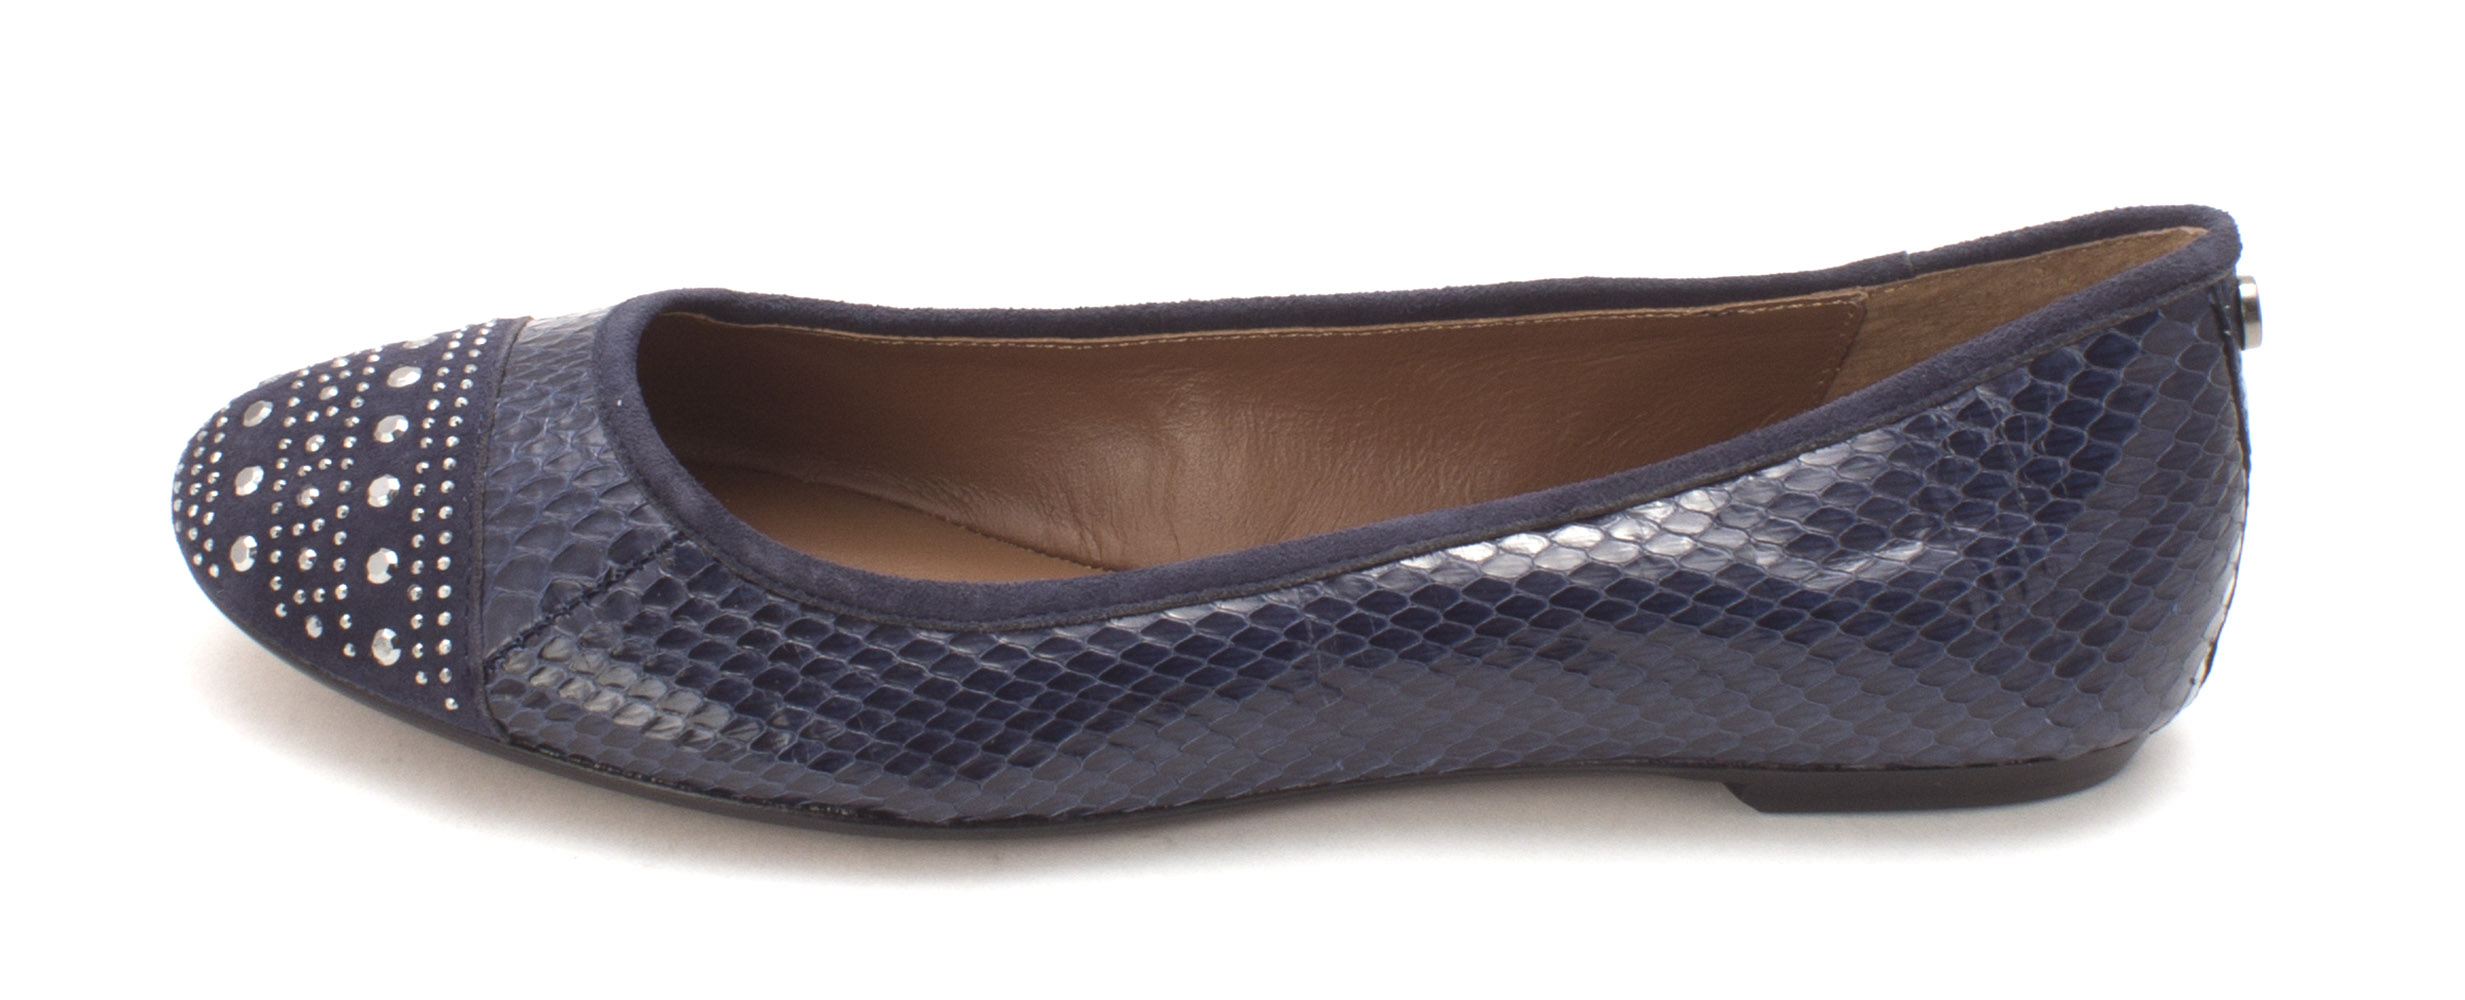 Donald J Pliner Women's Great Ballet Flats by Donald J Pliner